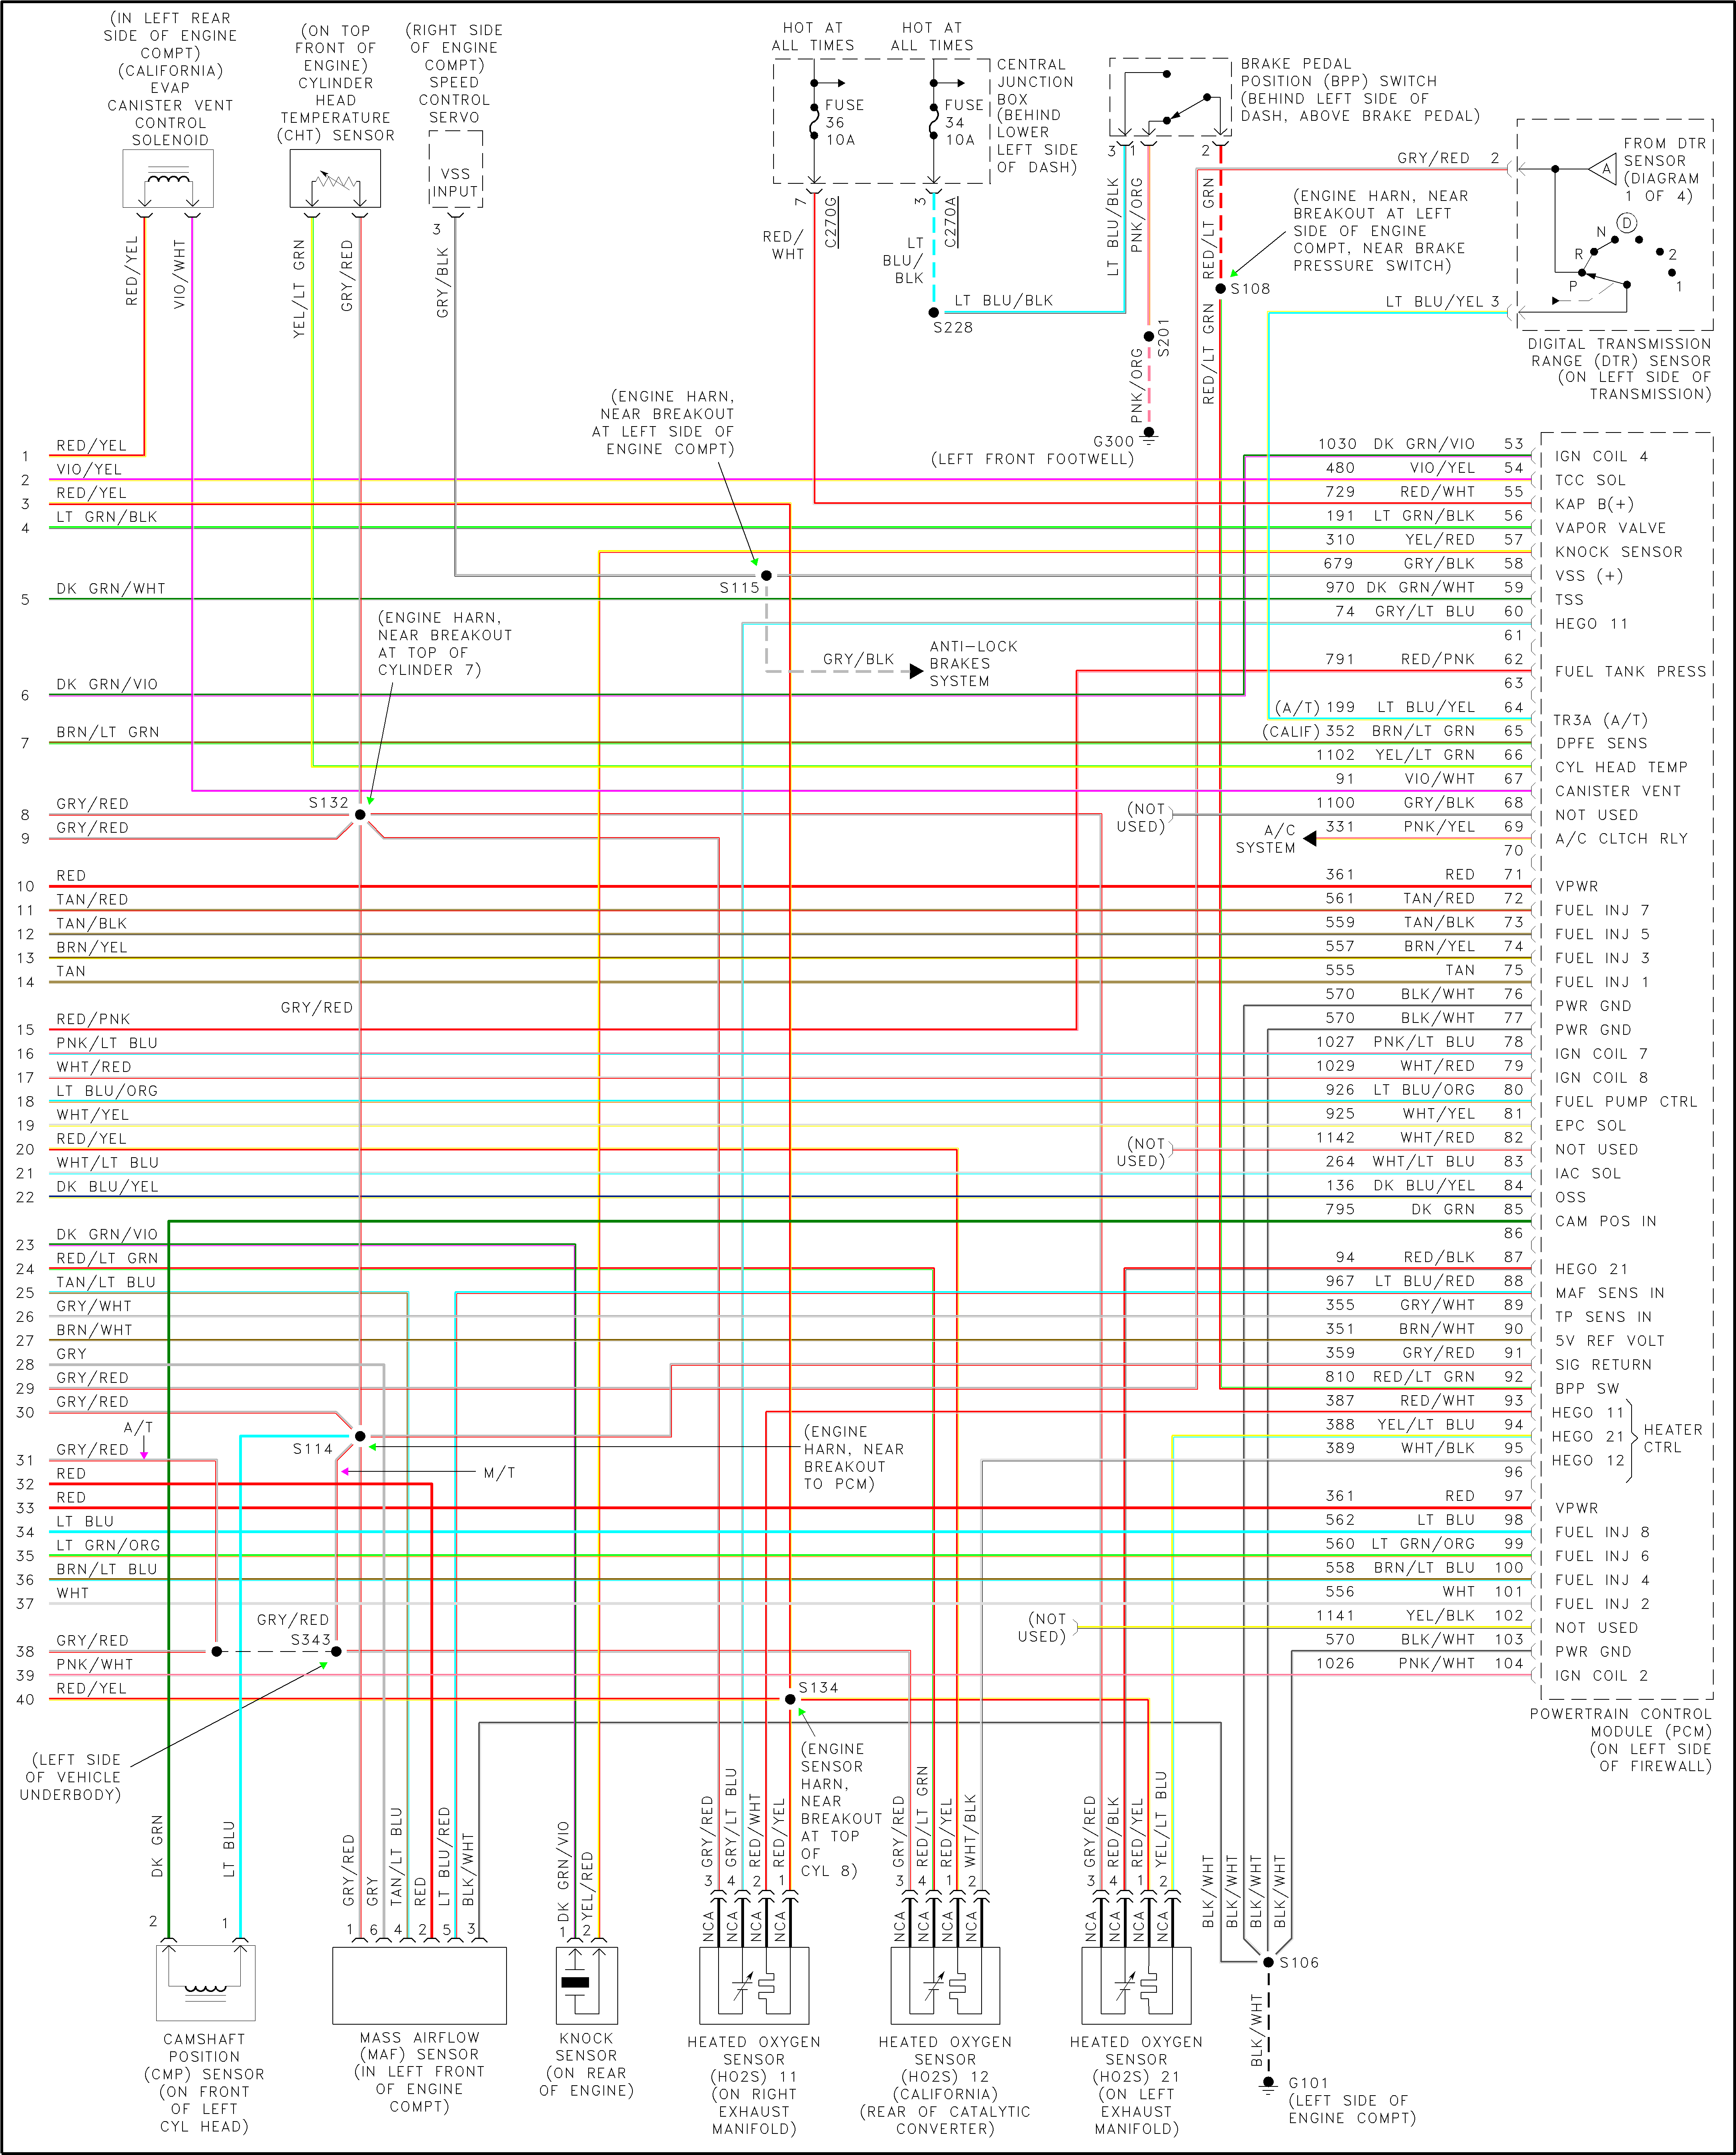 I Have A 2002 Ford F350 And I Need A Wiring Diagram For